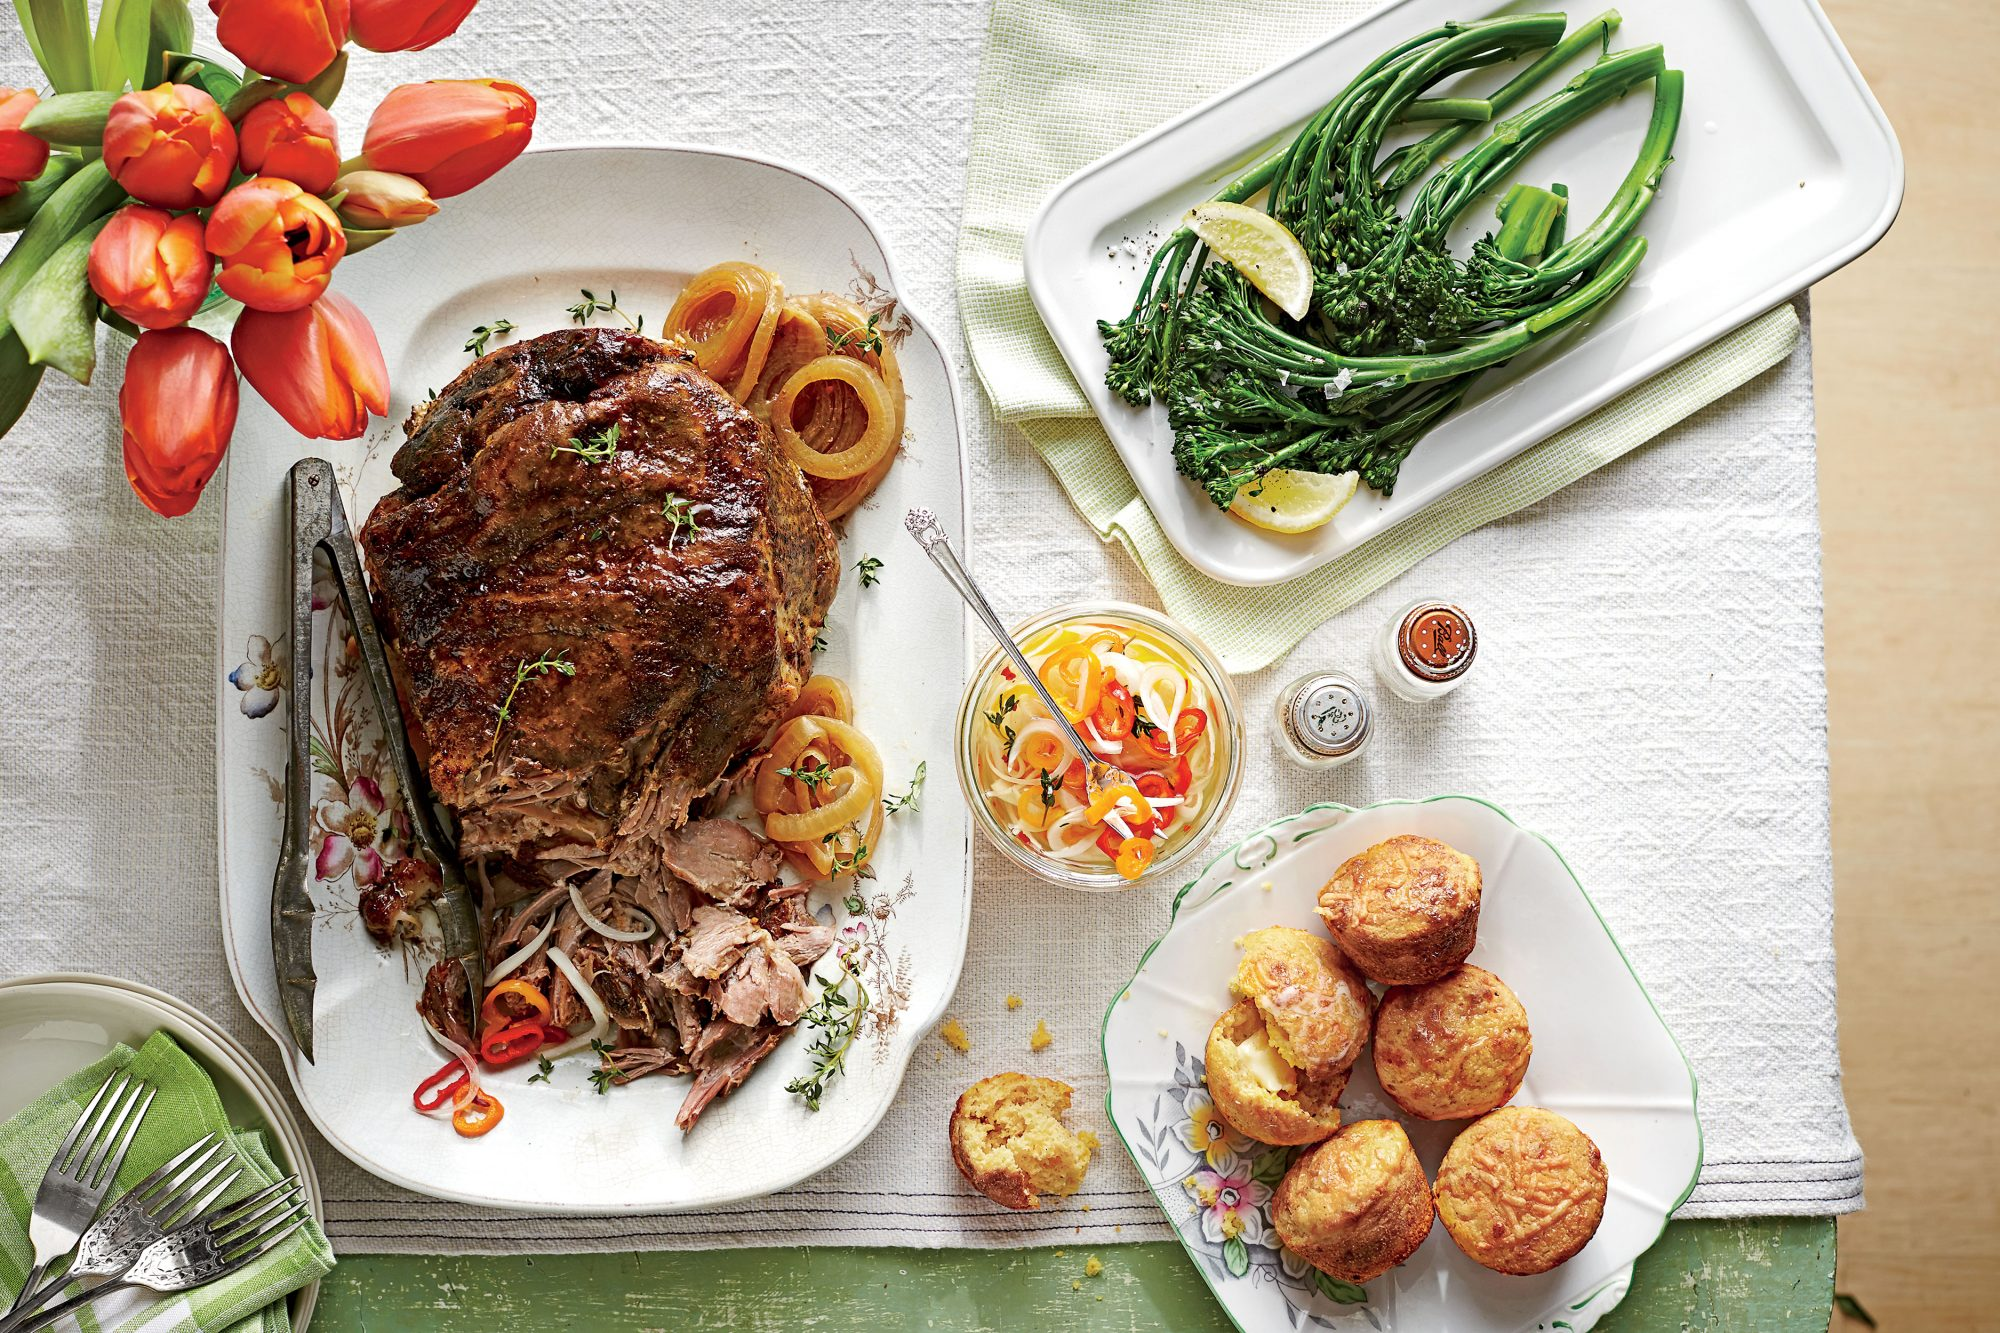 5-Ingredient Slow-Cooker Pulled Pork